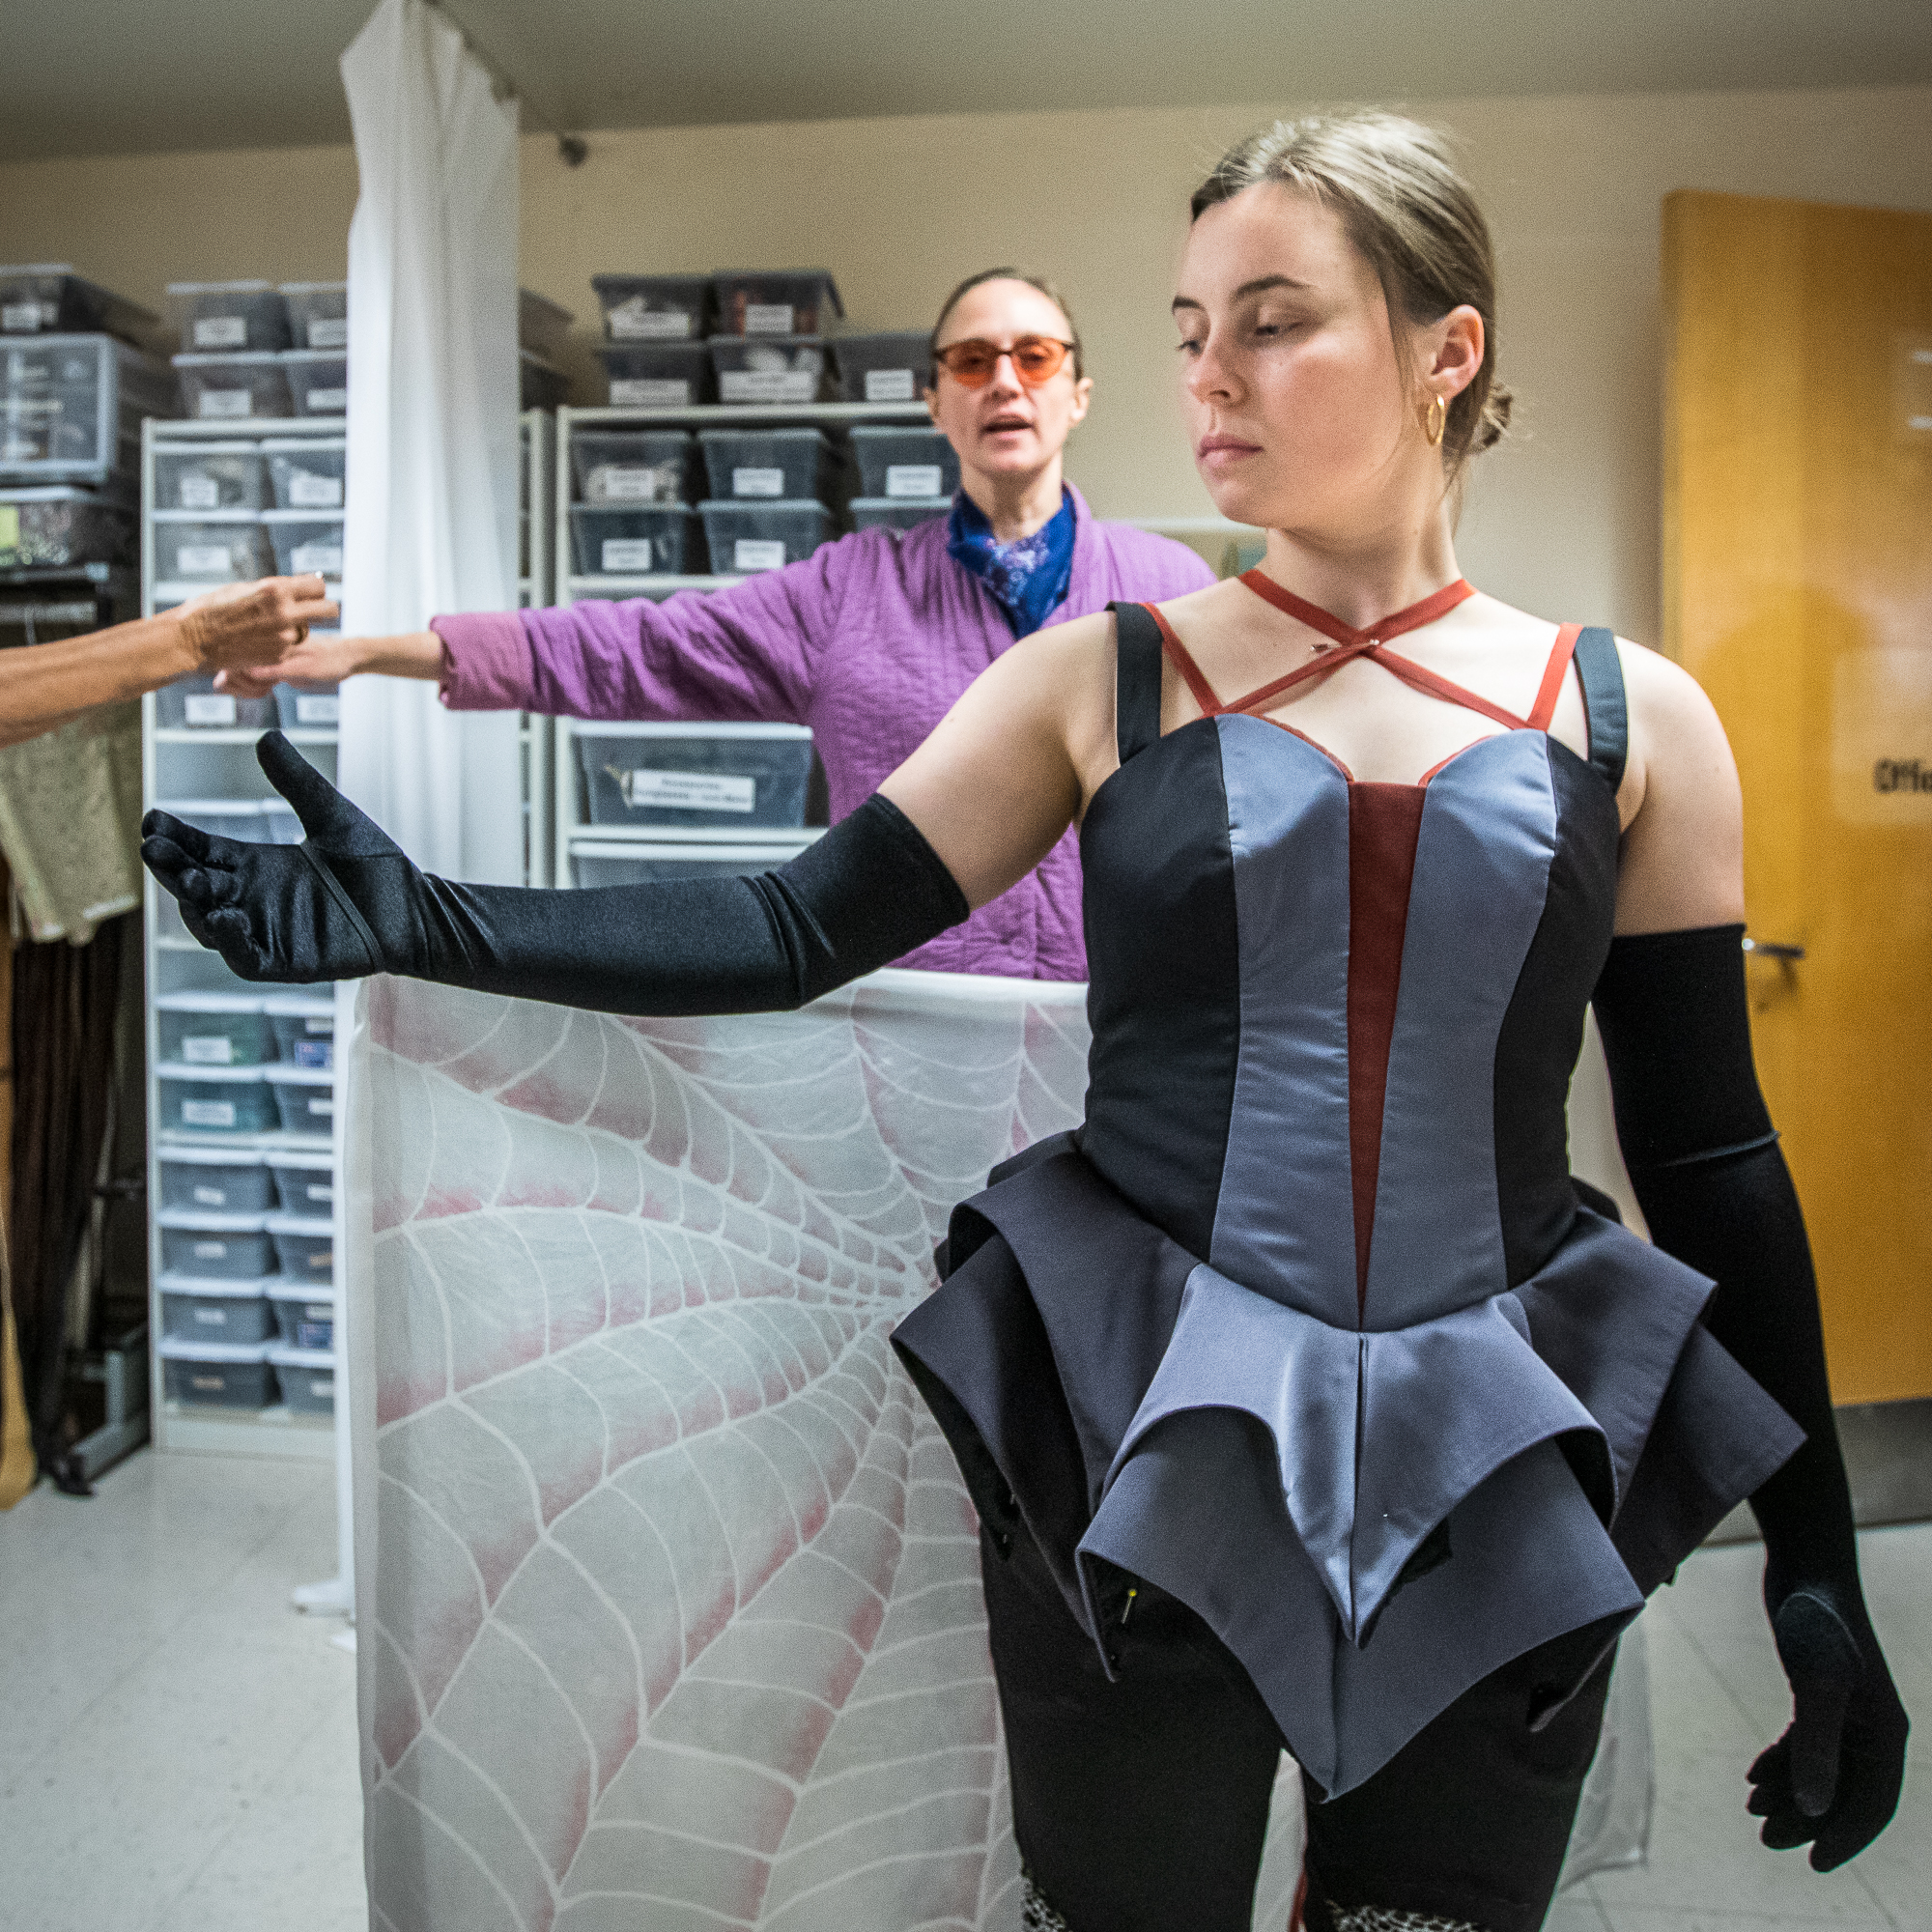 ASU theater students tap into fantasy for 'Kiss of the Spider Woman'